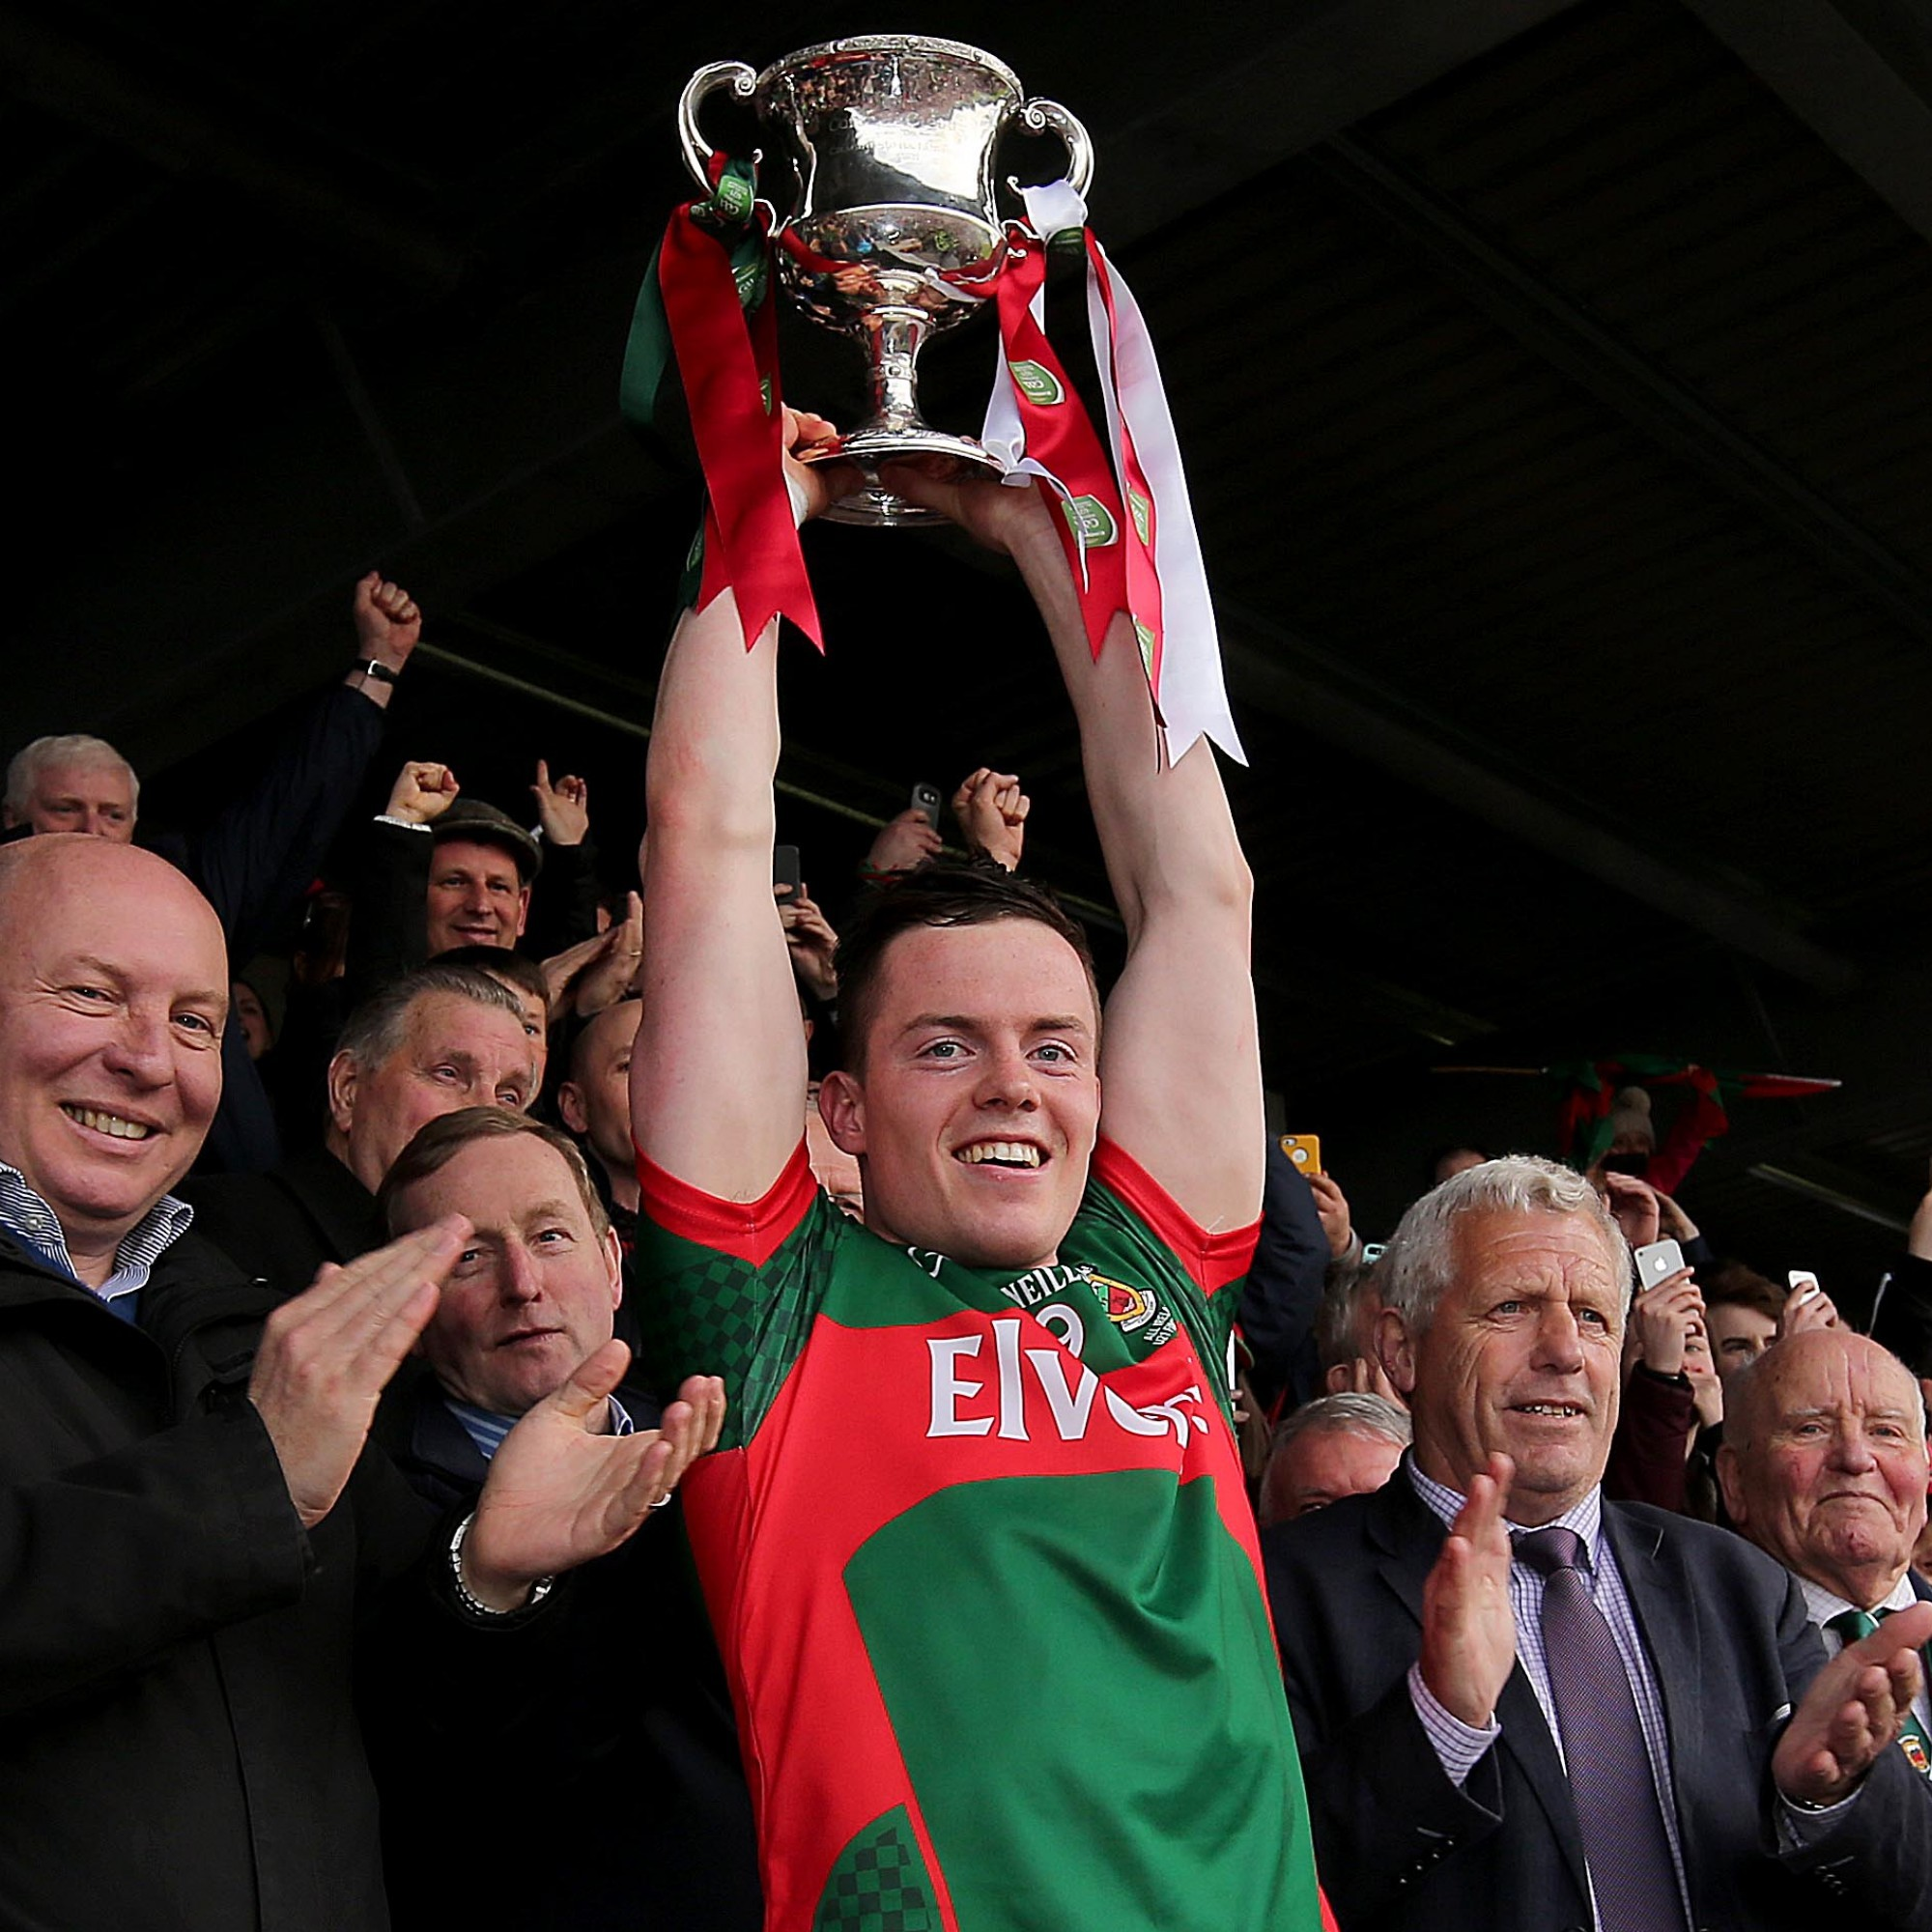 Mayo claim All-Ireland U21 title with clinical 5-goal defeat of Cork